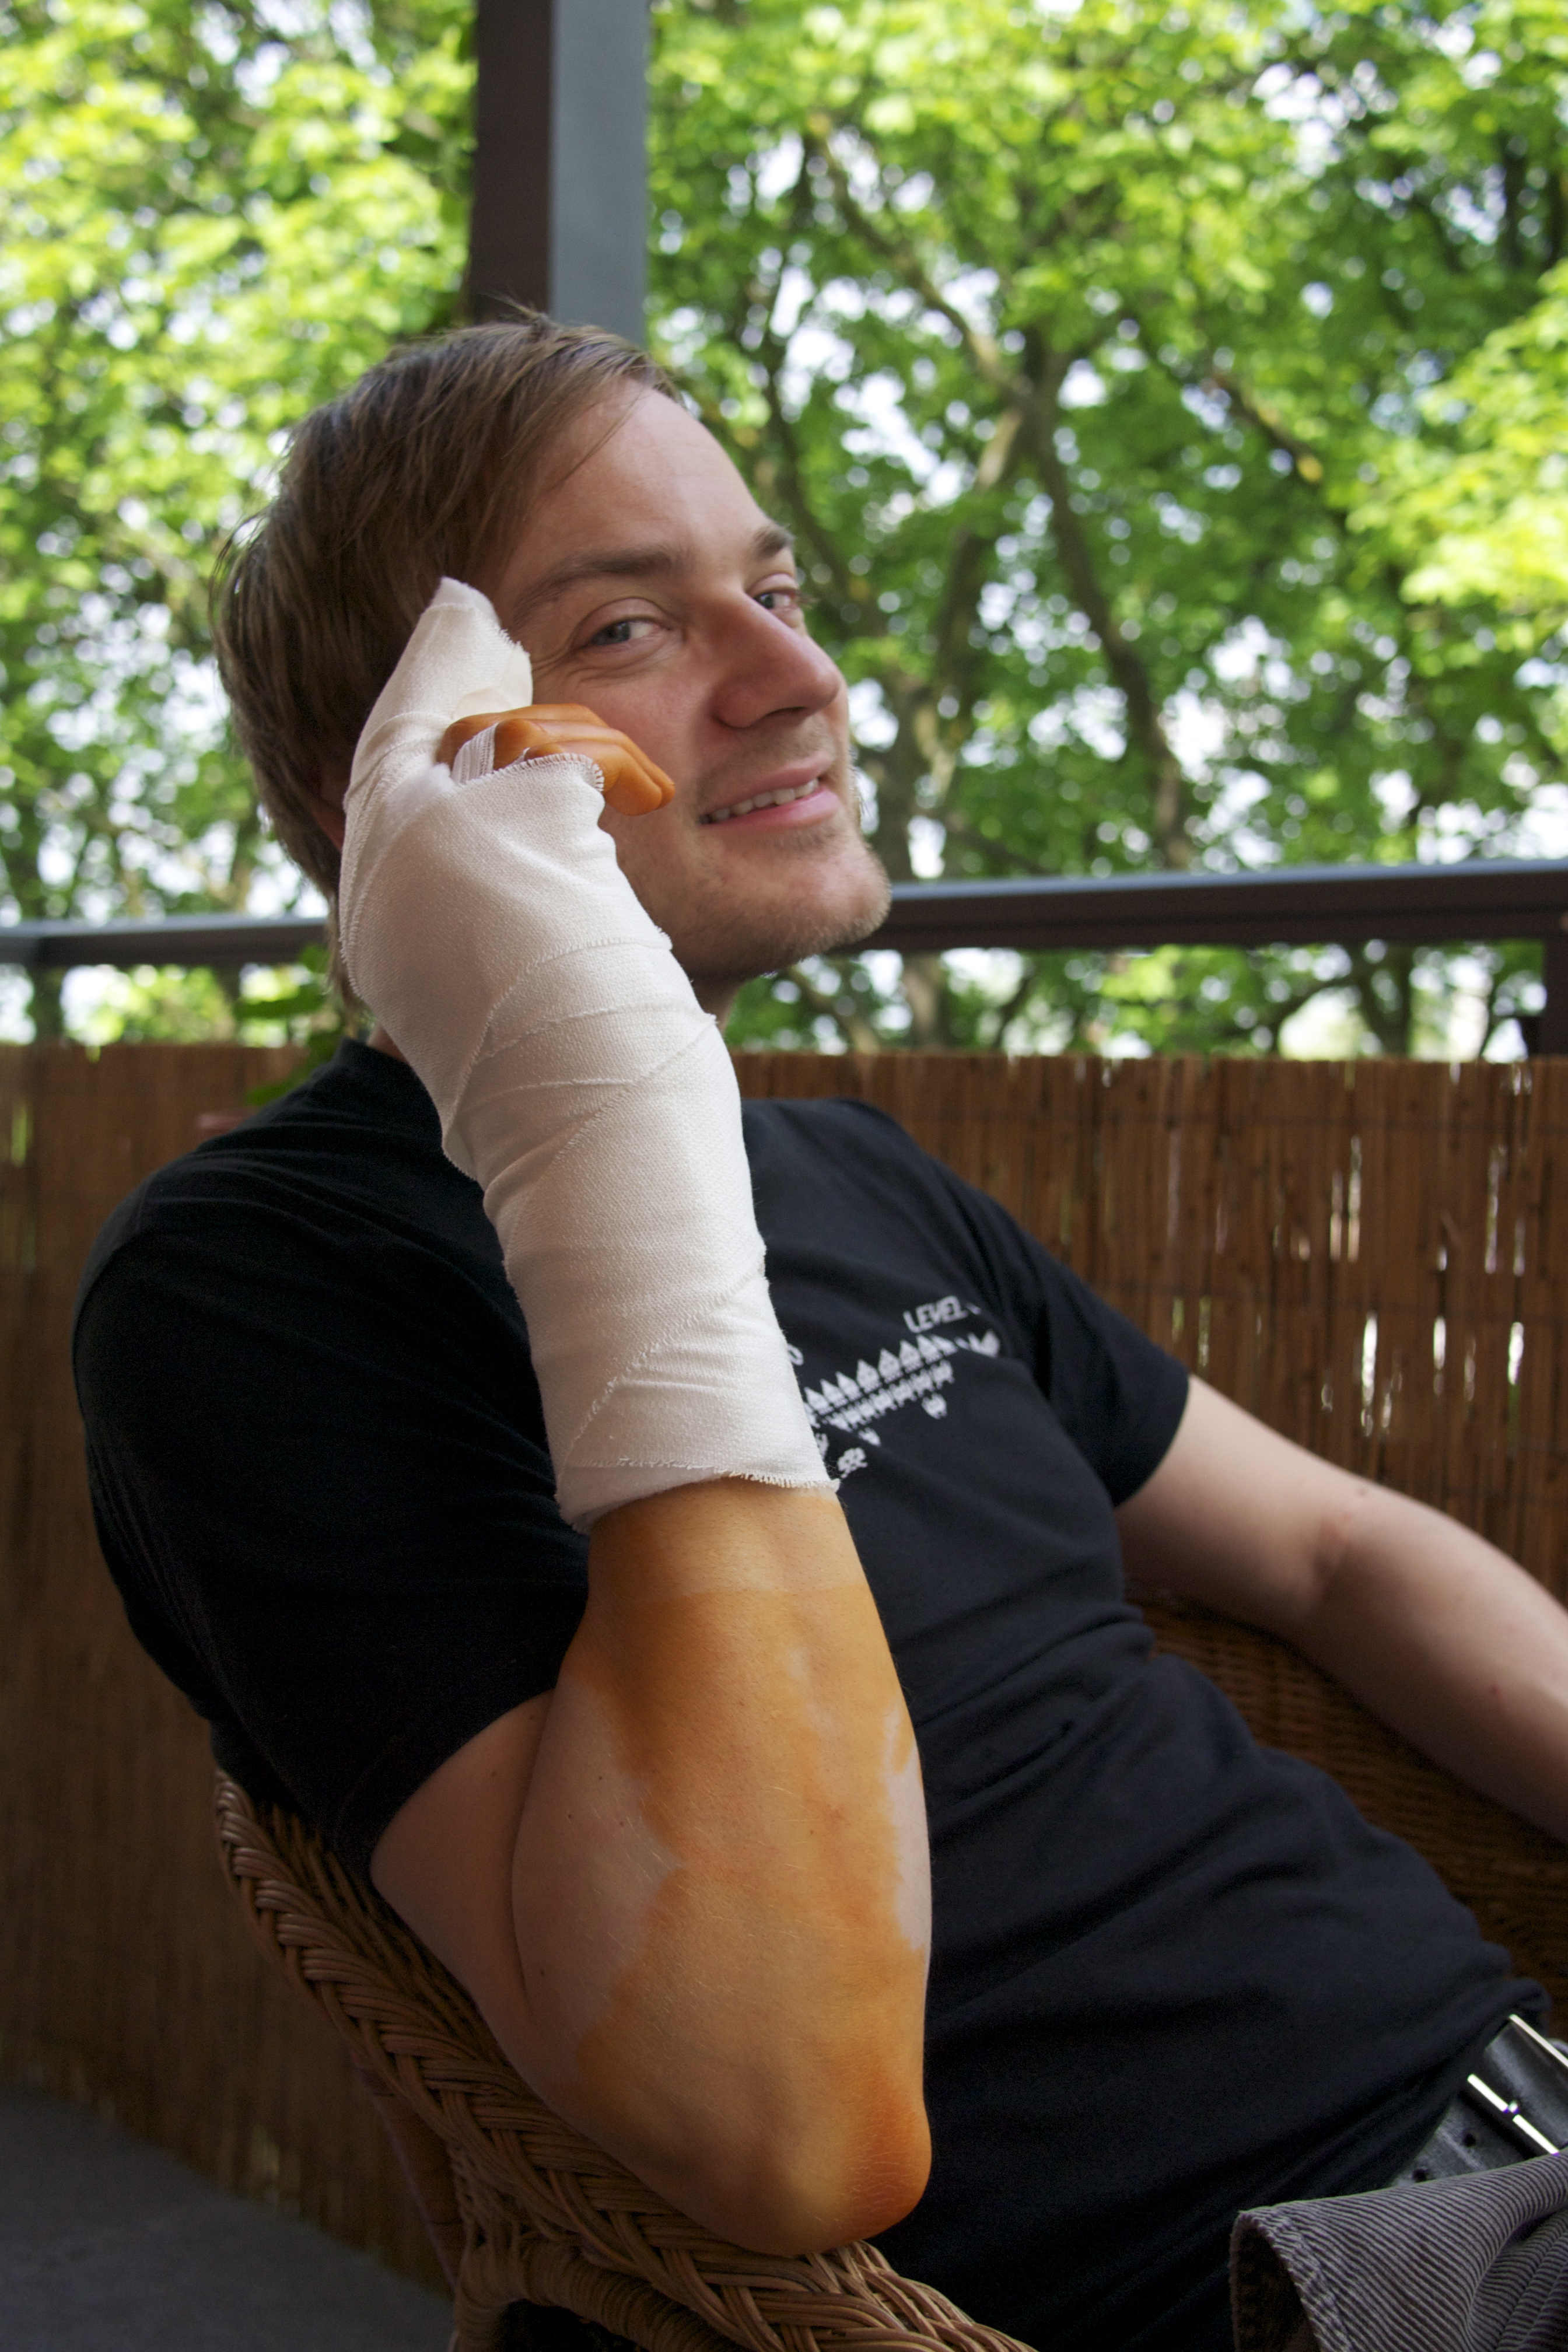 André's bandaged hand